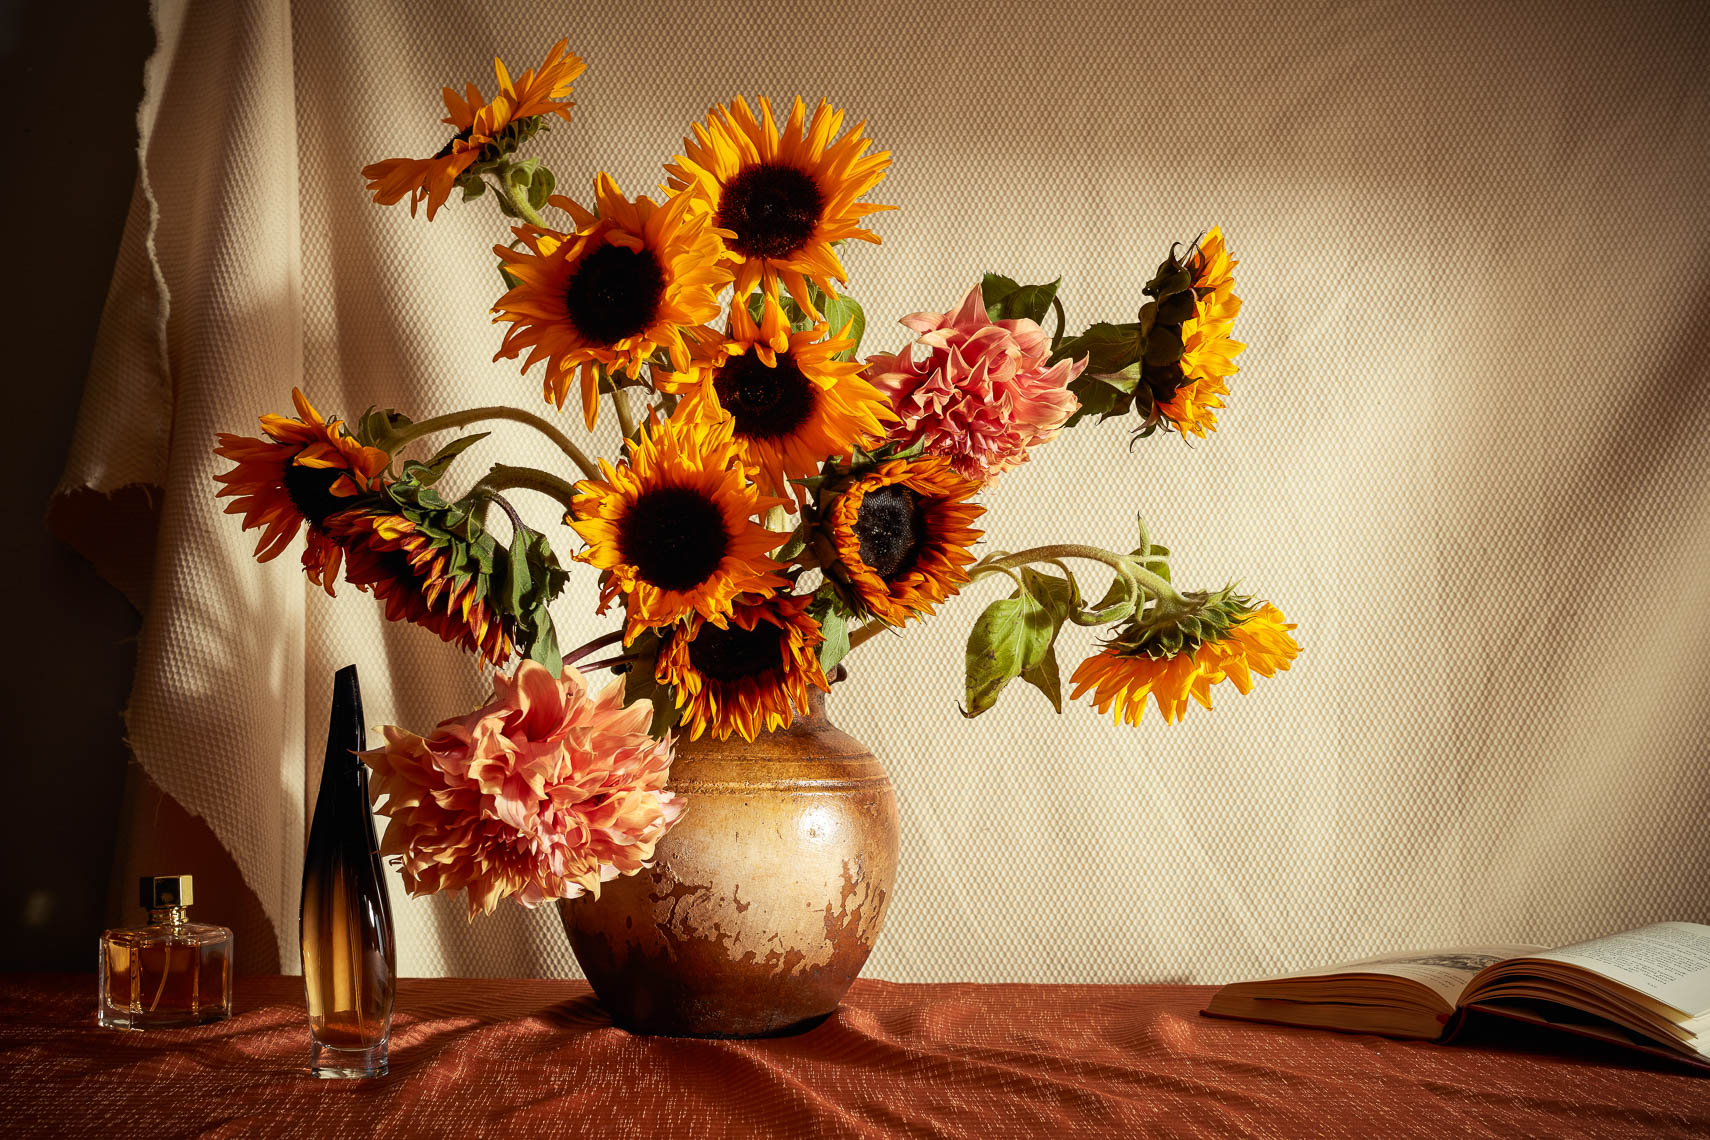 sunflowers and perfume still life photography with vase